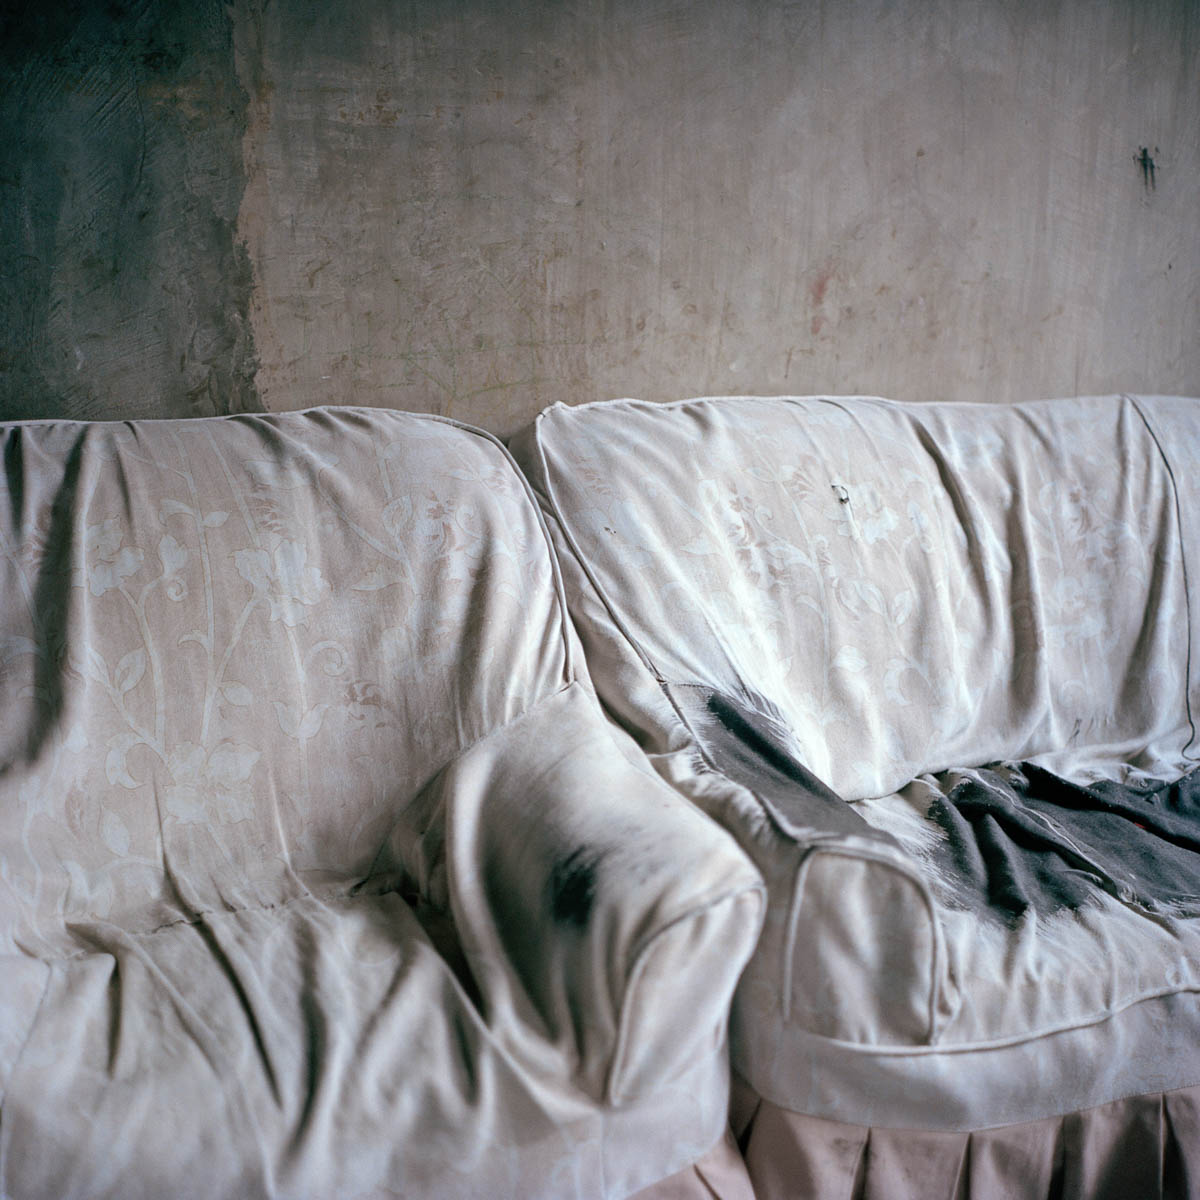 """Empty couch - An empty couch in barangay Capaya. Angeles City, Philippines, August 2014. - Copyright © © S. Borcard - N. Metraux - Angeles - Central Luzon - Philippines - <A href=""""https://maps.google.com/?ll=15.168055,120.586388&z=16"""" target=""""_blank"""">(Map Empty couch)</A>"""